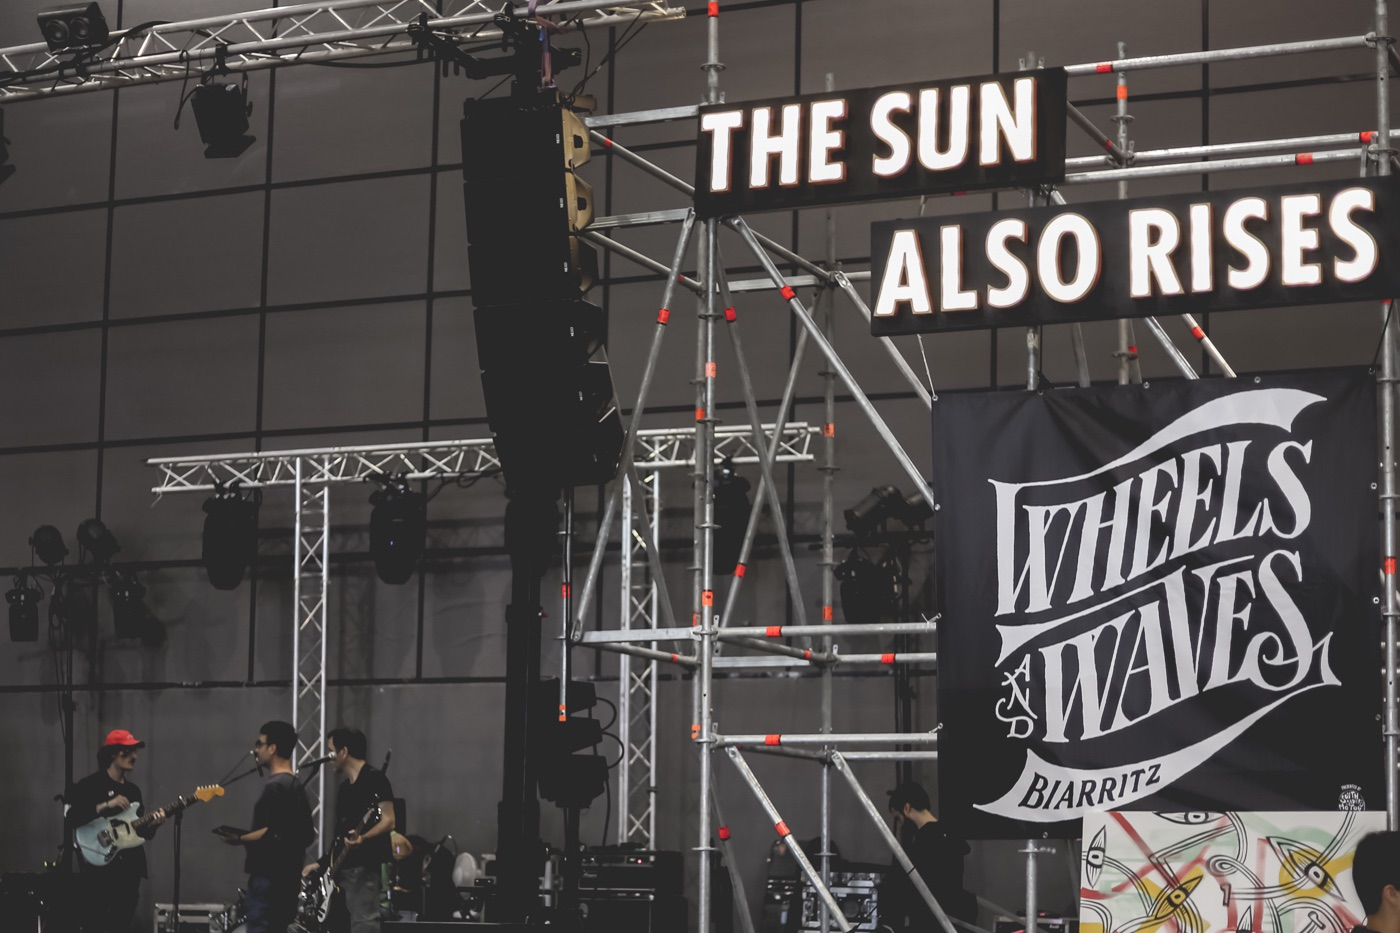 Wheels & Waves Concerts - The Sun Also Rises